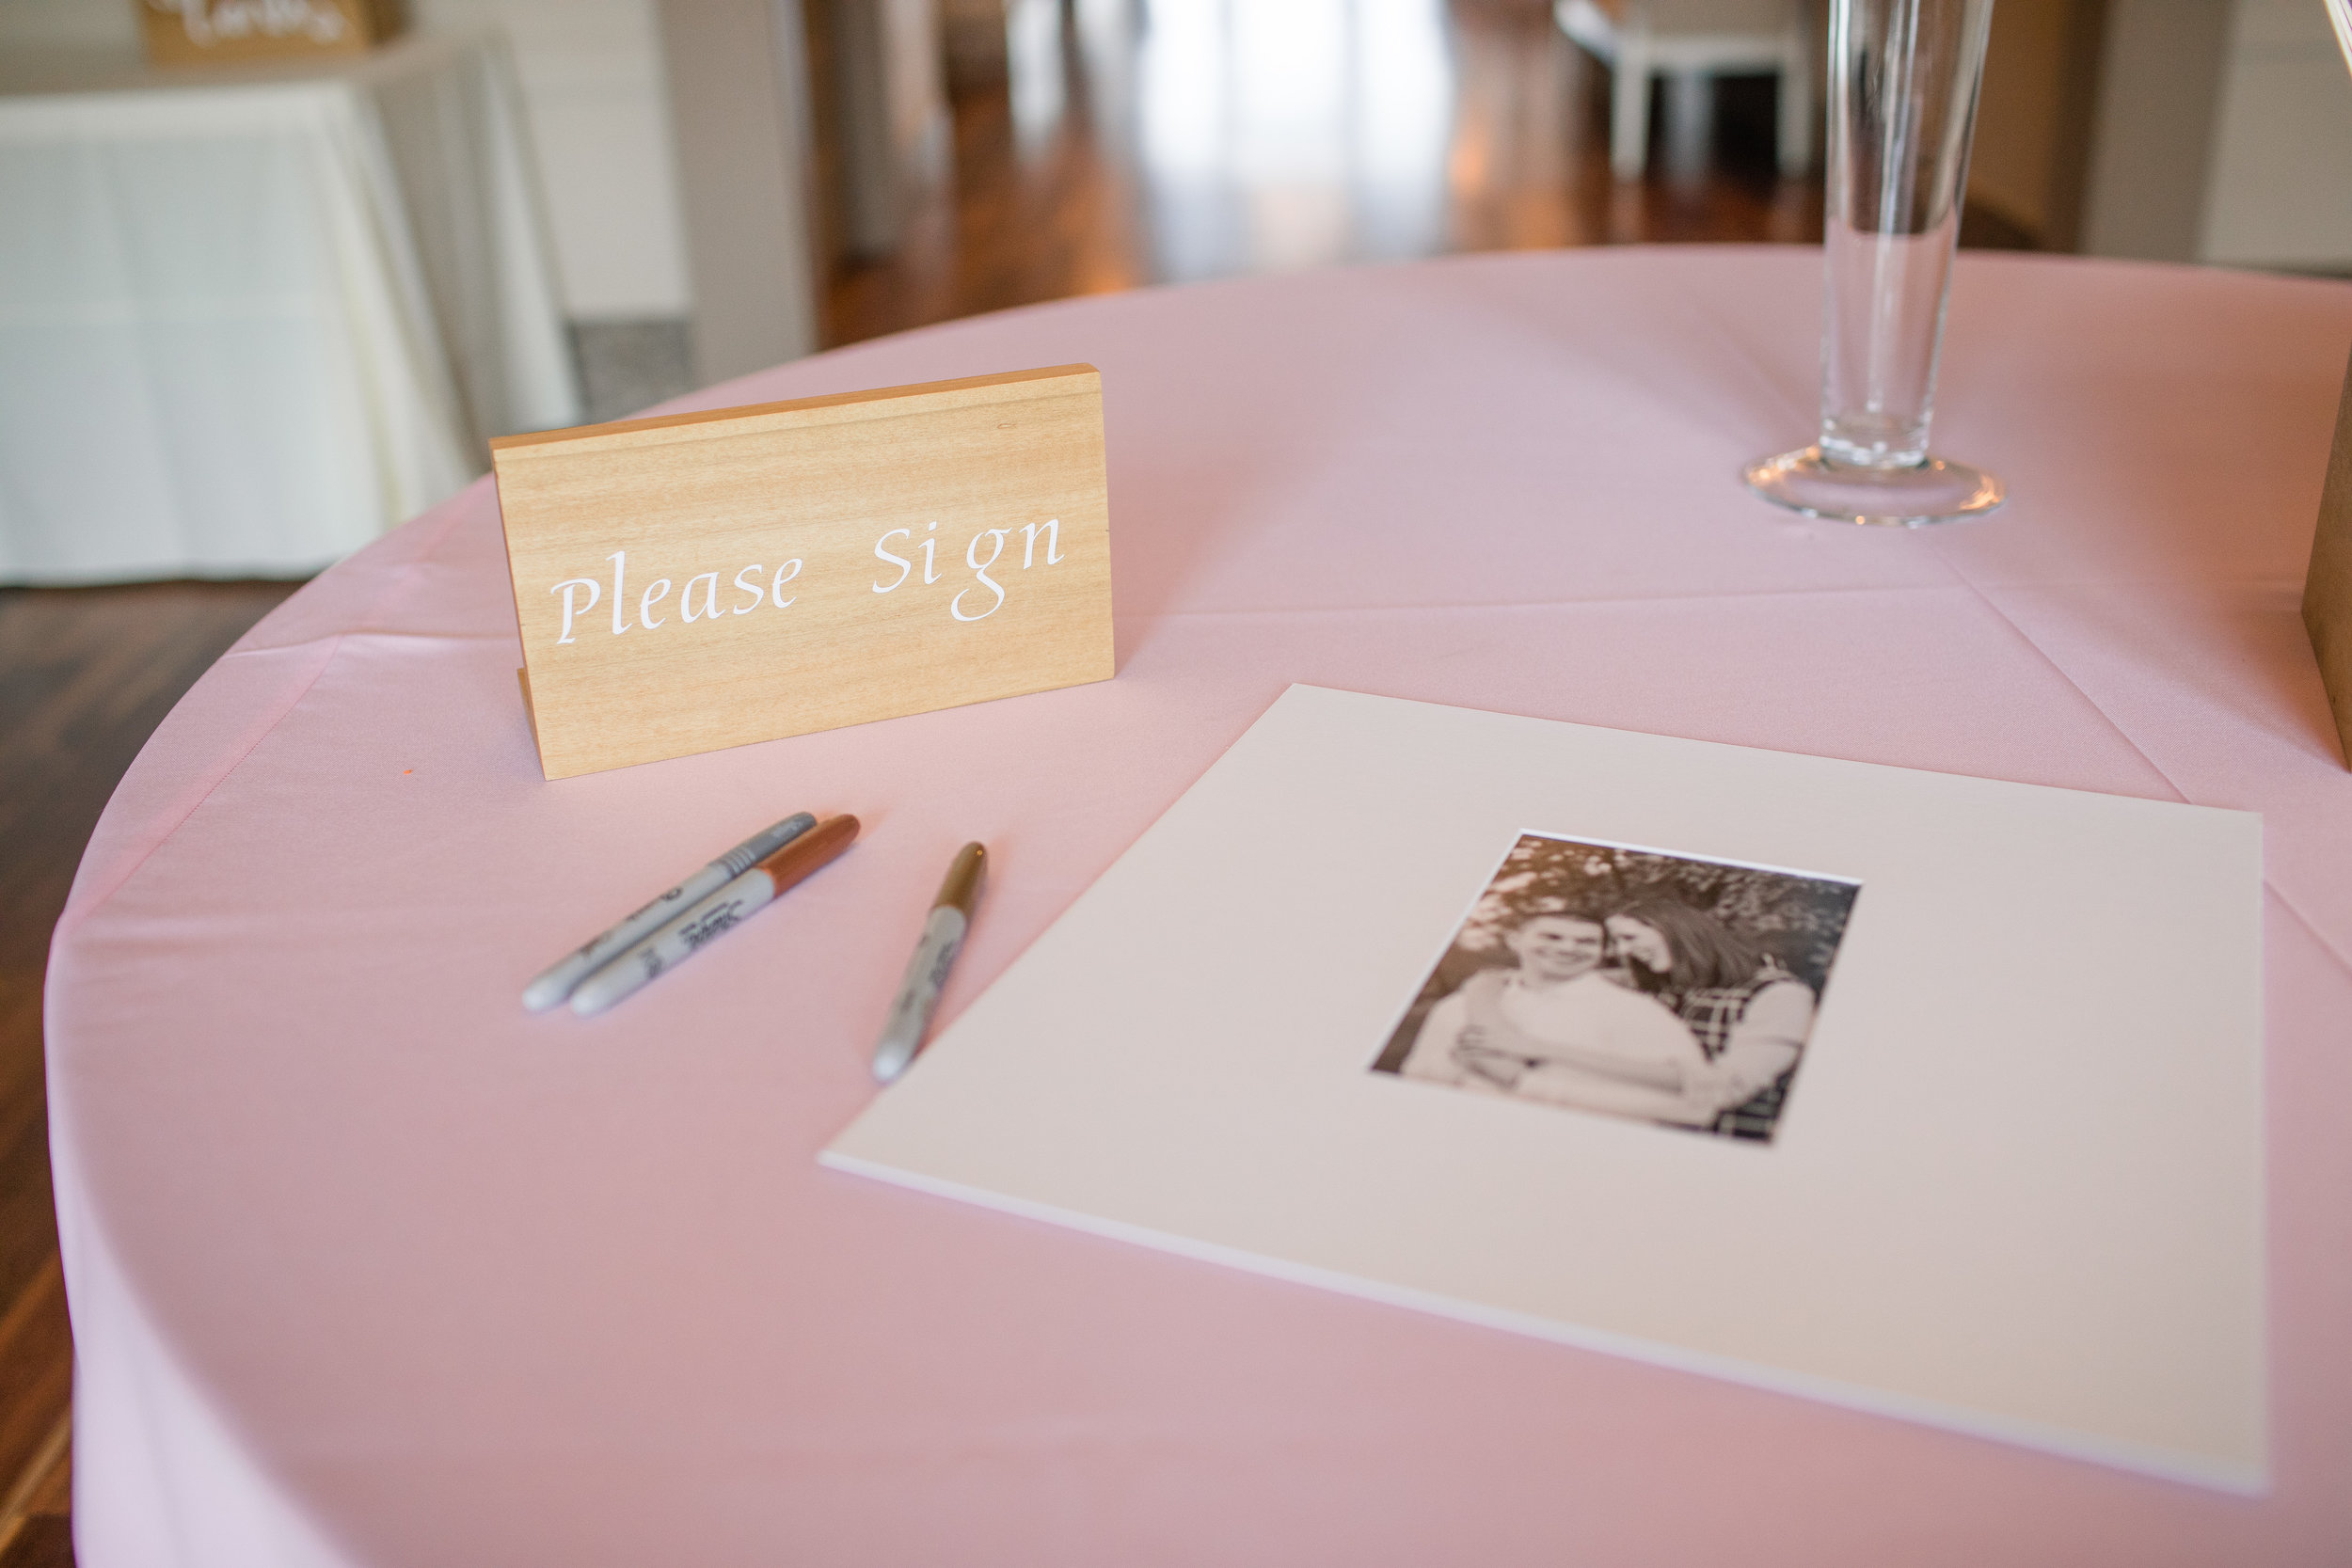 nicole_kyle_west_des_moines_iowa_wedding_photographers_10.jpg